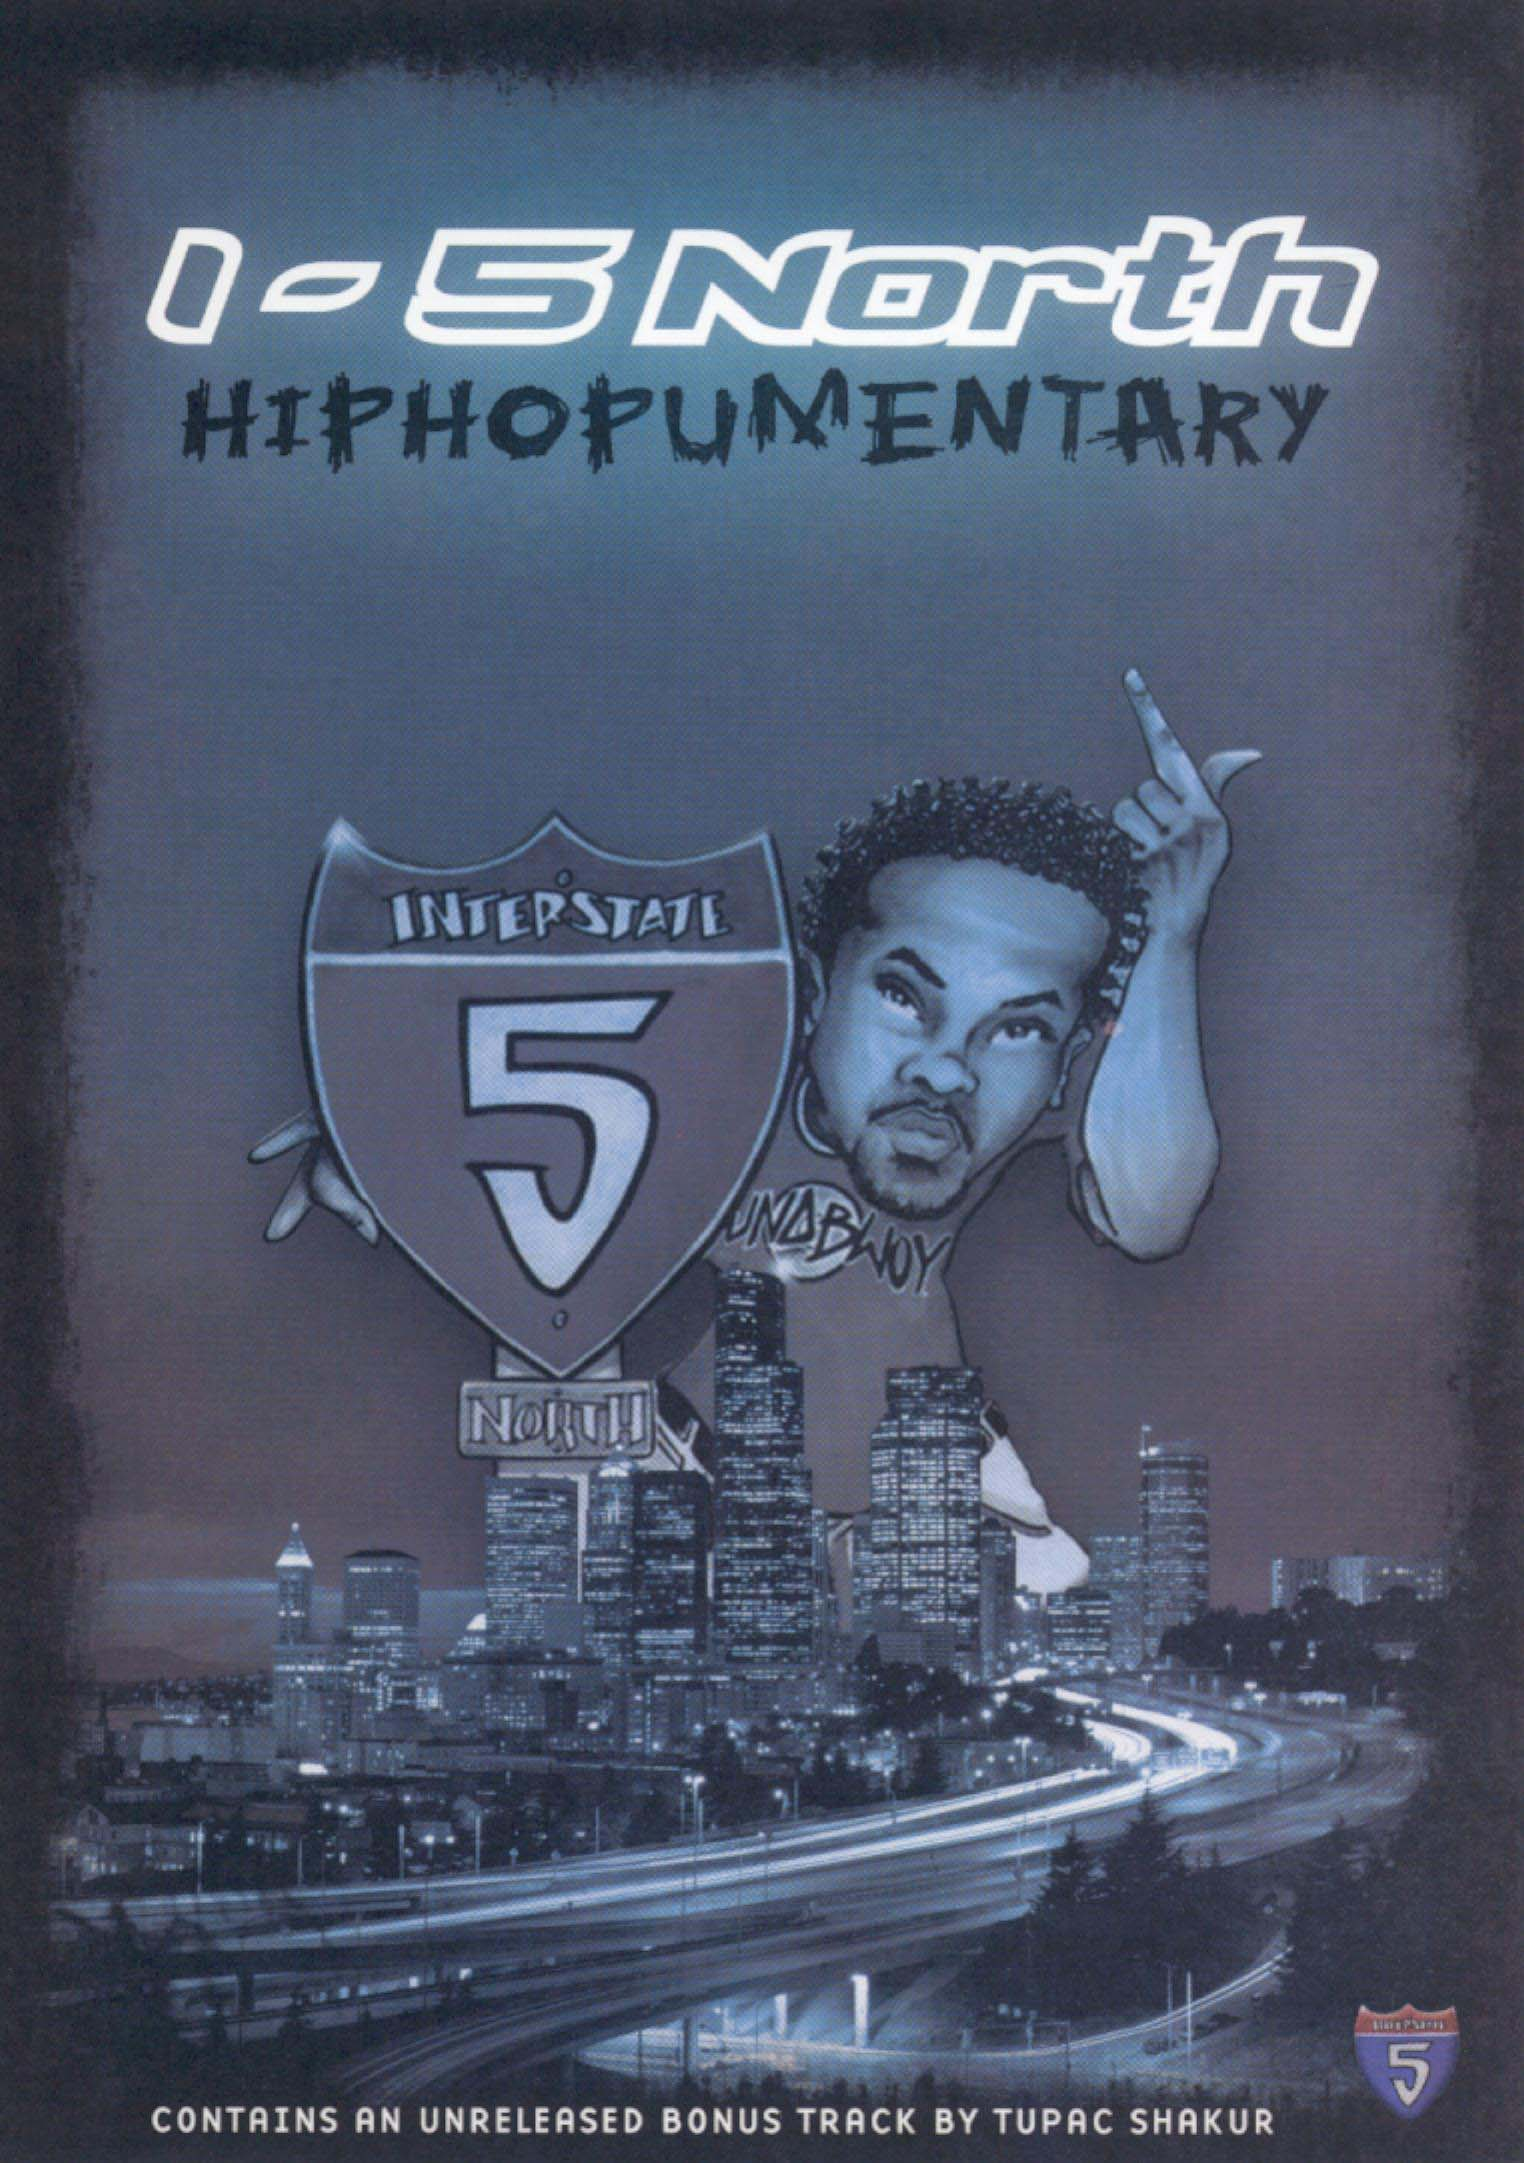 I-5 North: Hiphopumentary